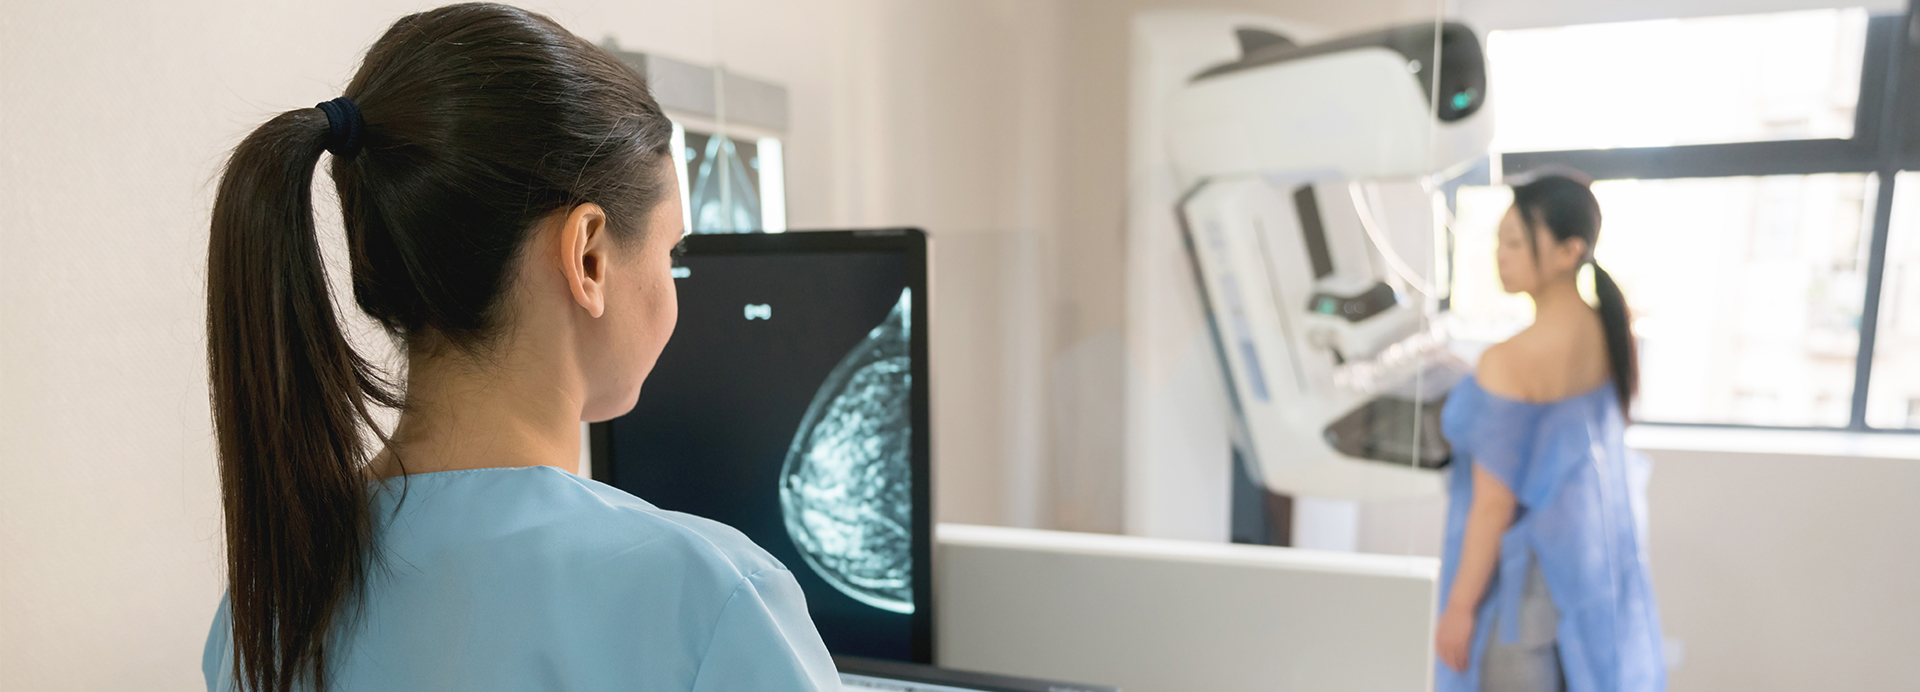 Medical Technician performing a mammogram on a patient